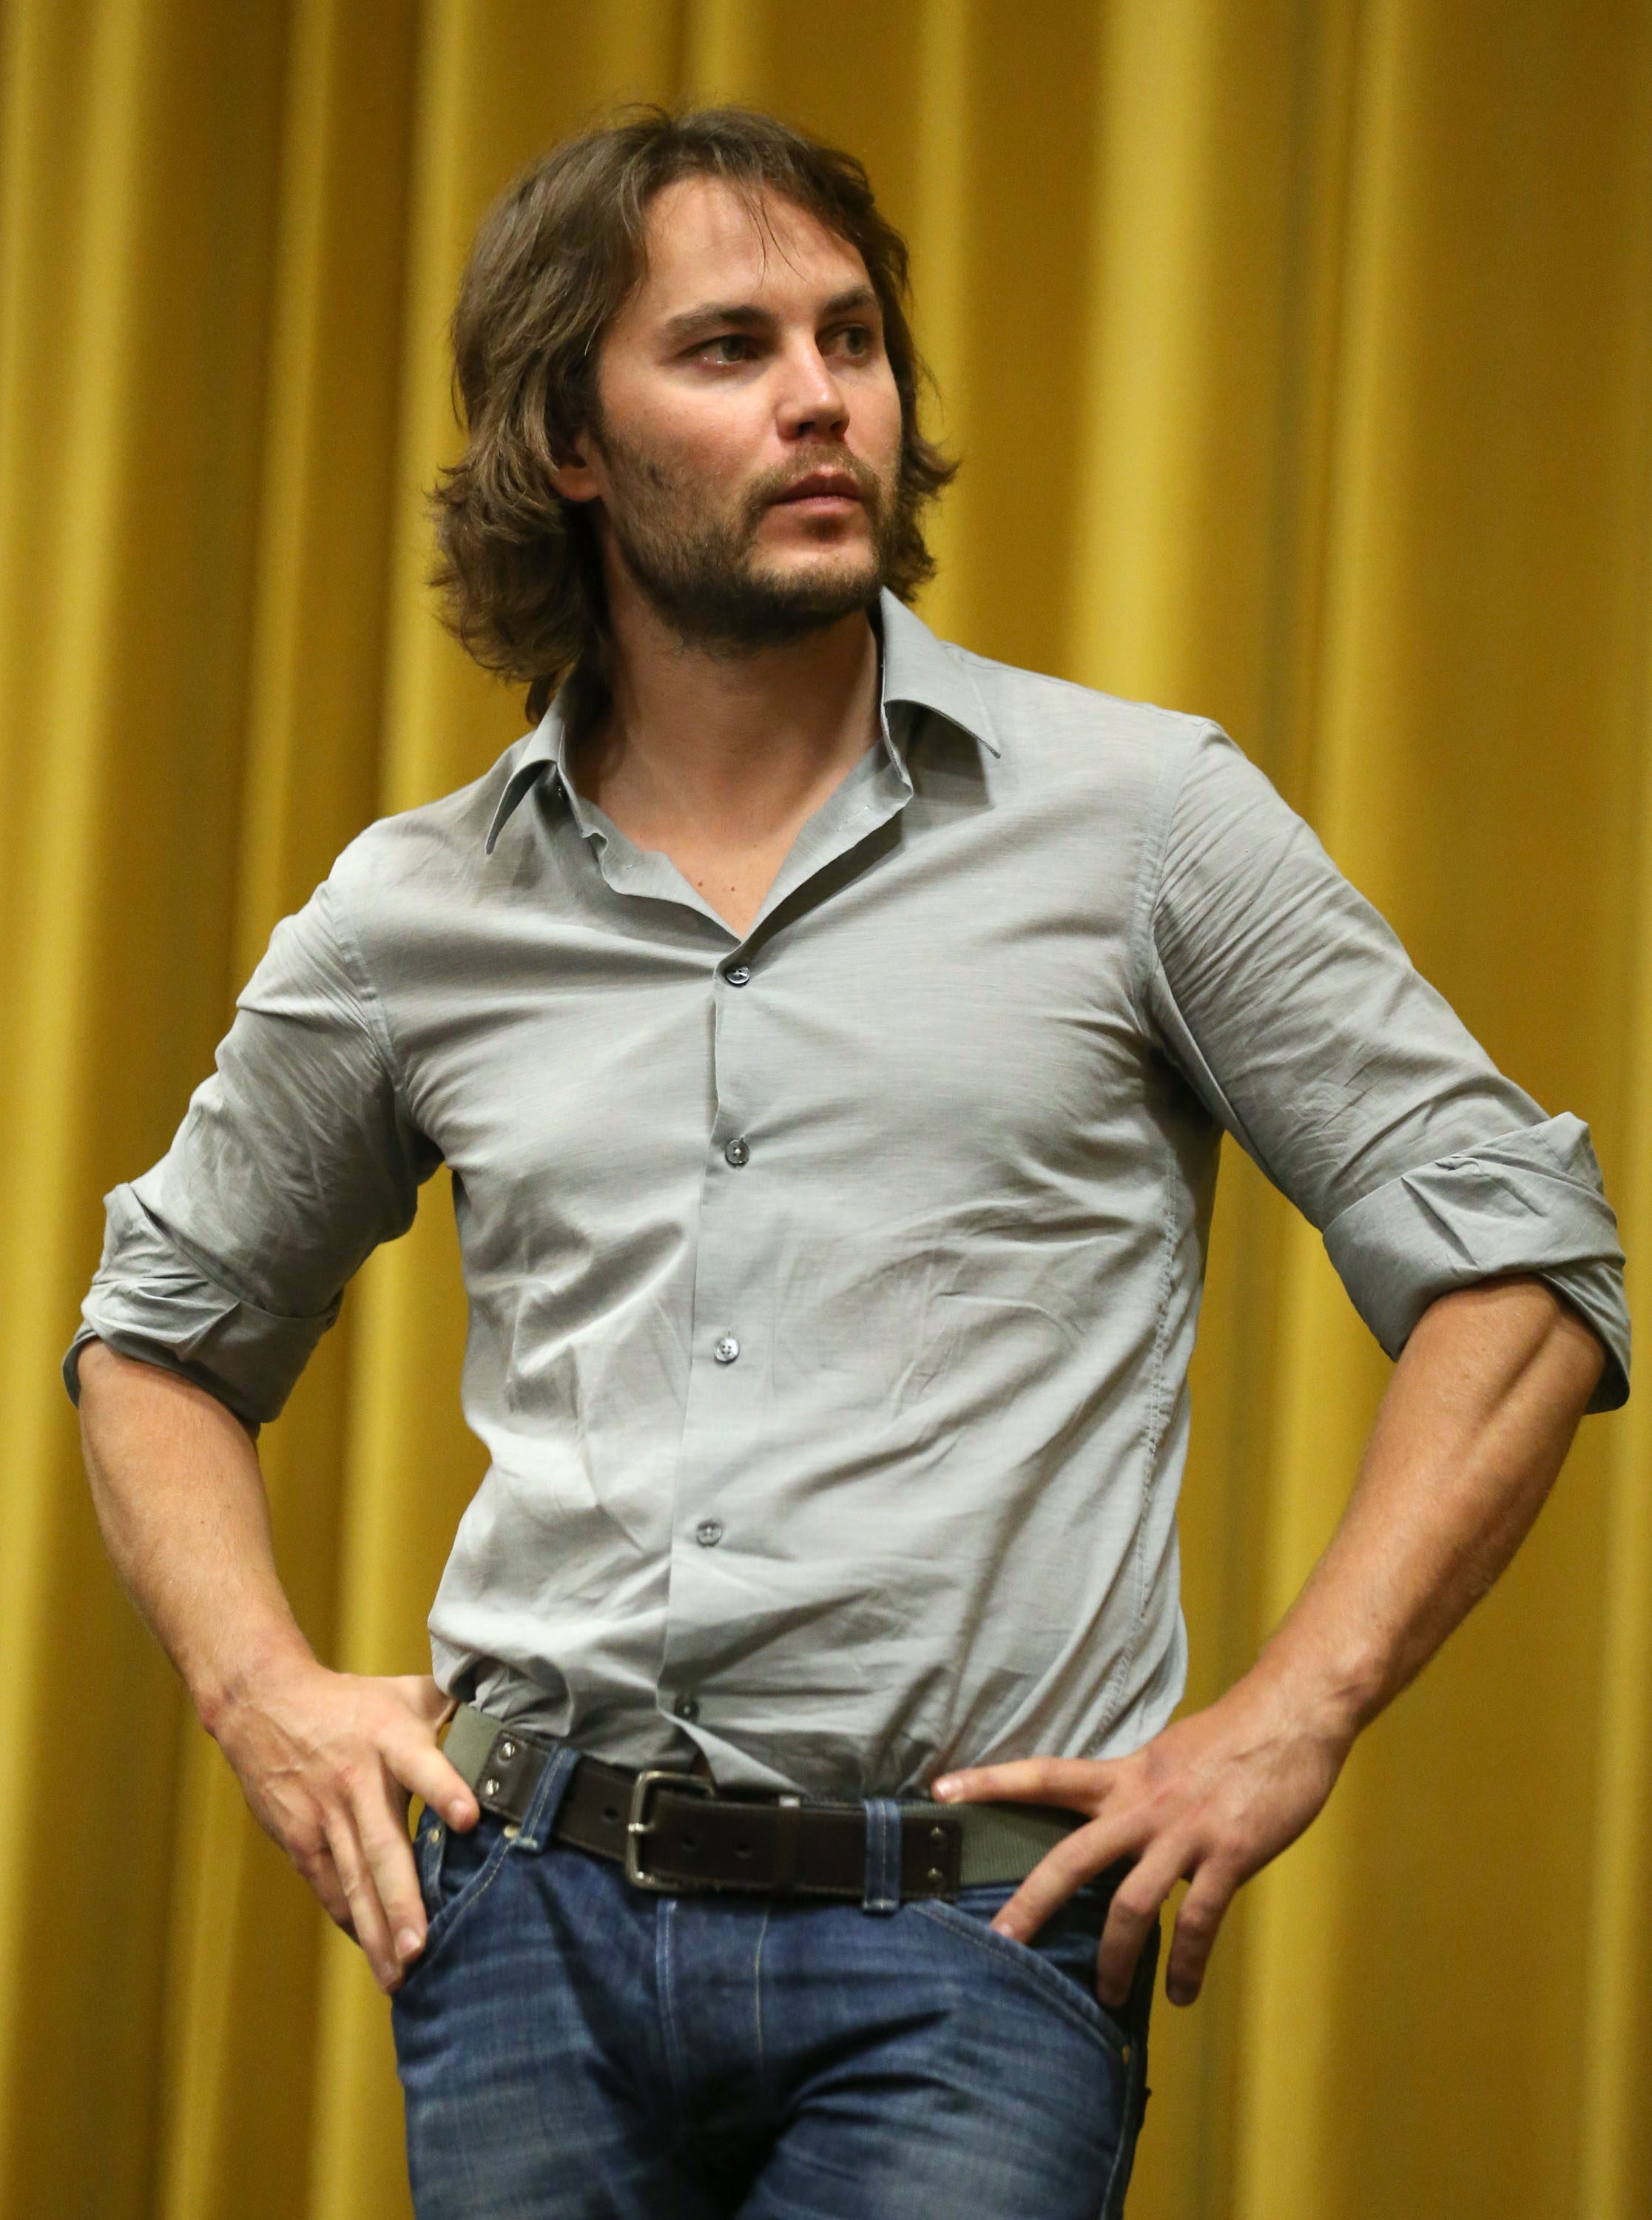 True Detective' Season 2 With Taylor Kitsch? Here's Why